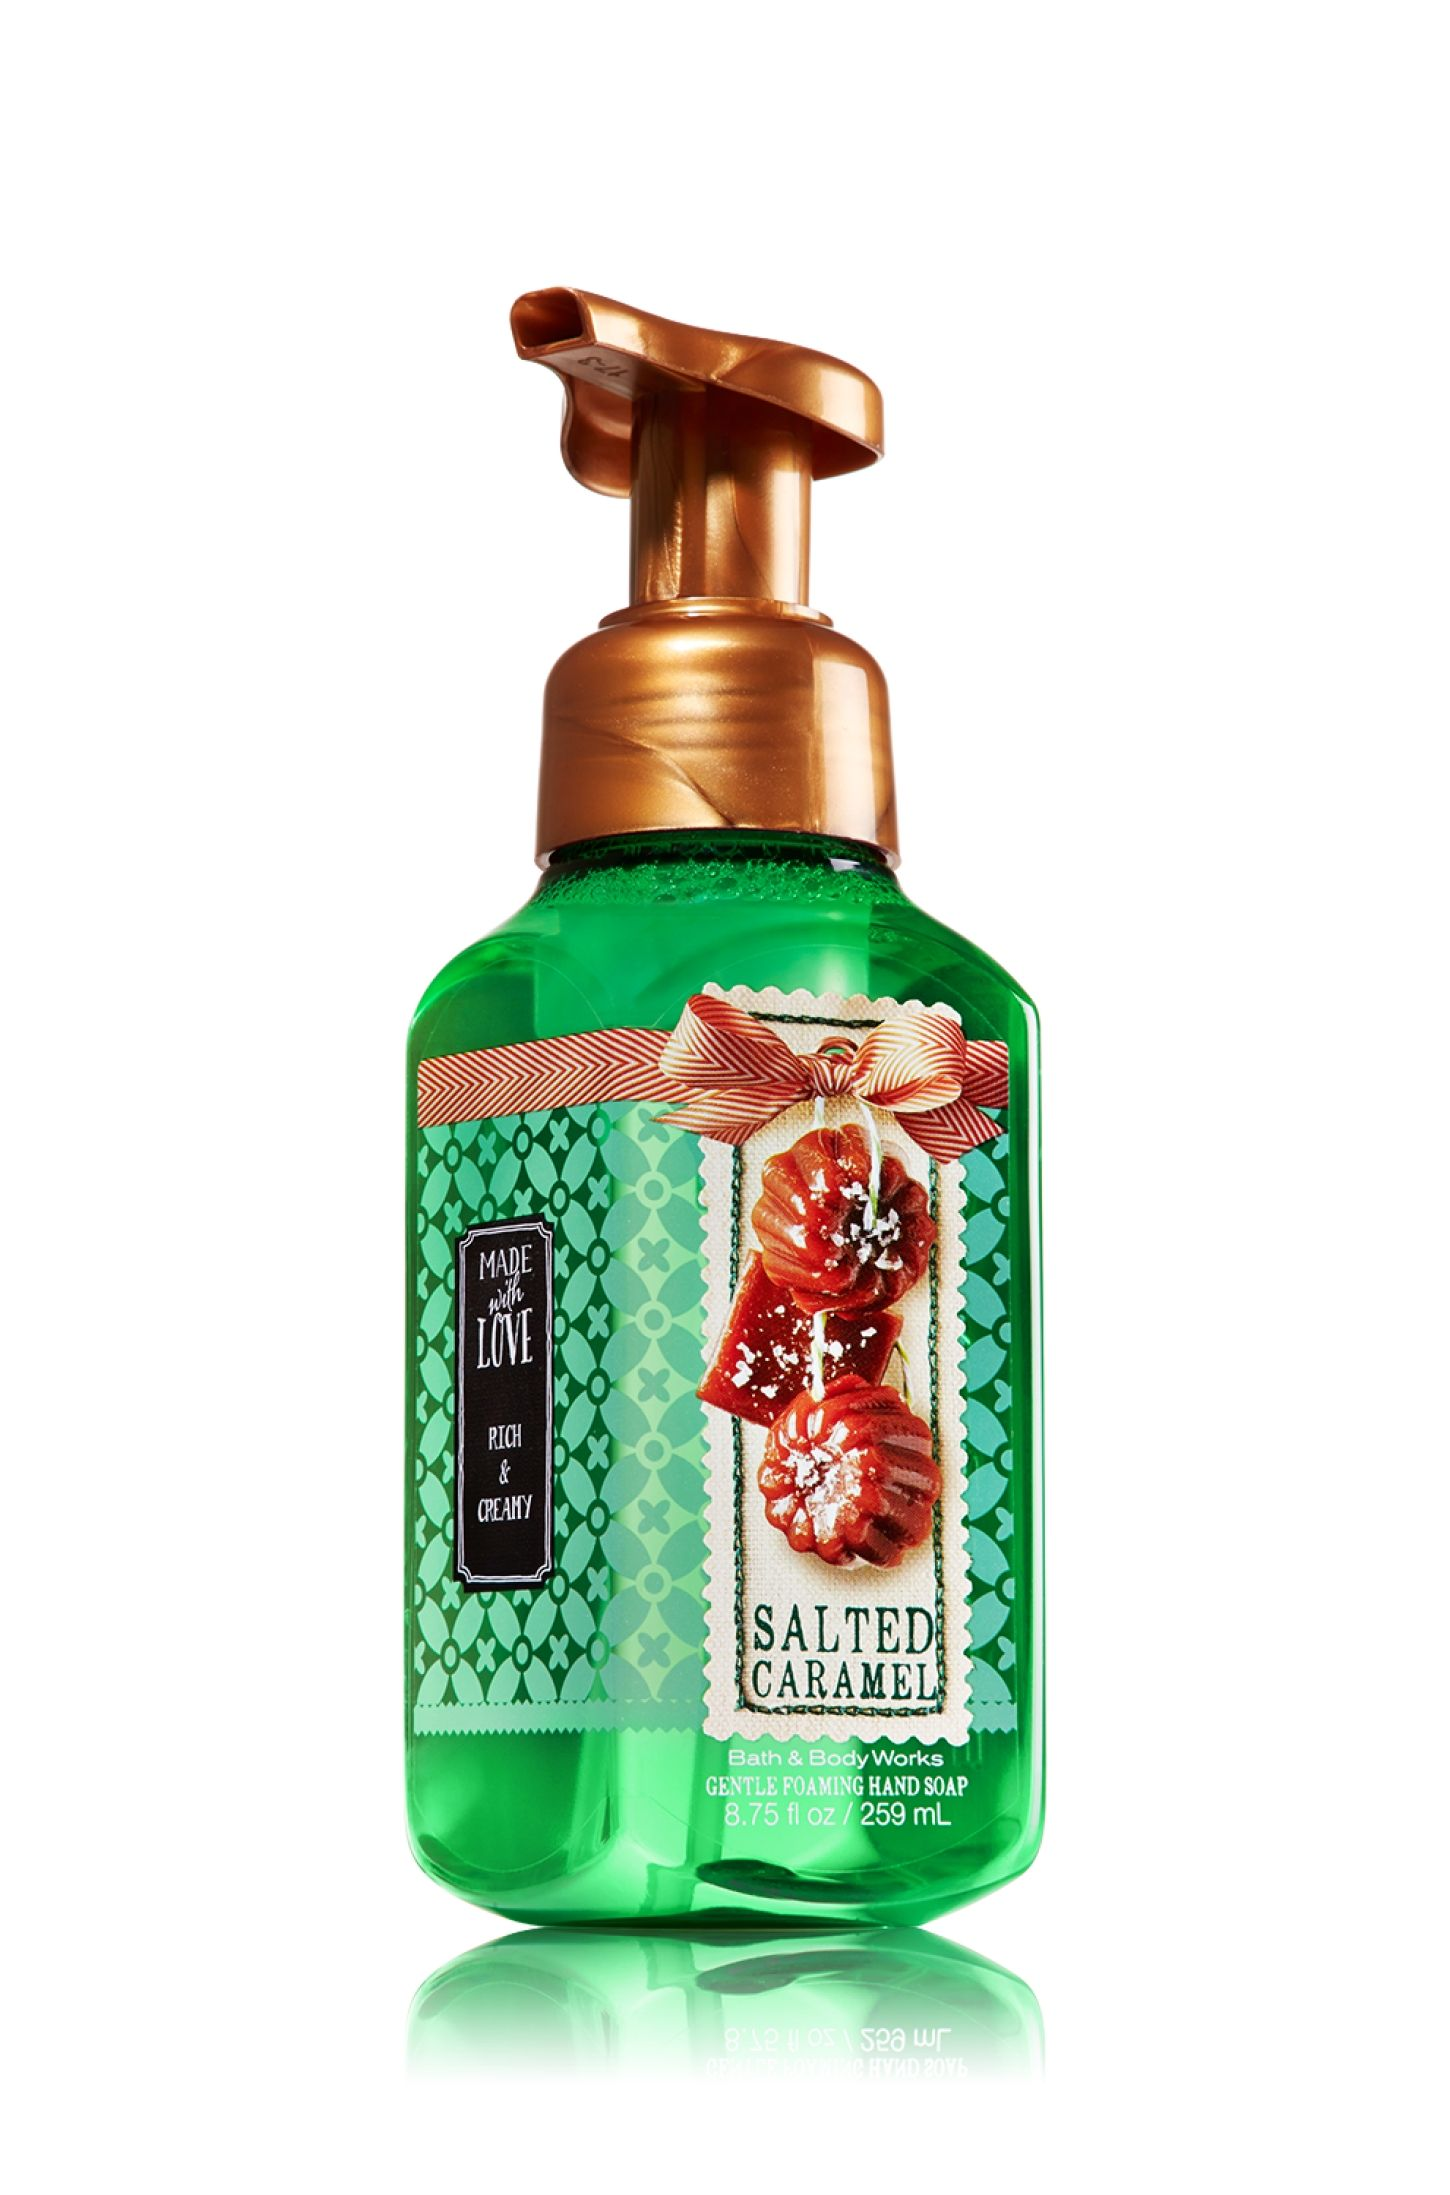 Salted Caramel Gentle Foaming Hand Soap Soap Sanitizer Bath Body Works Bath And Body Works Bath And Body Bath N Body Works